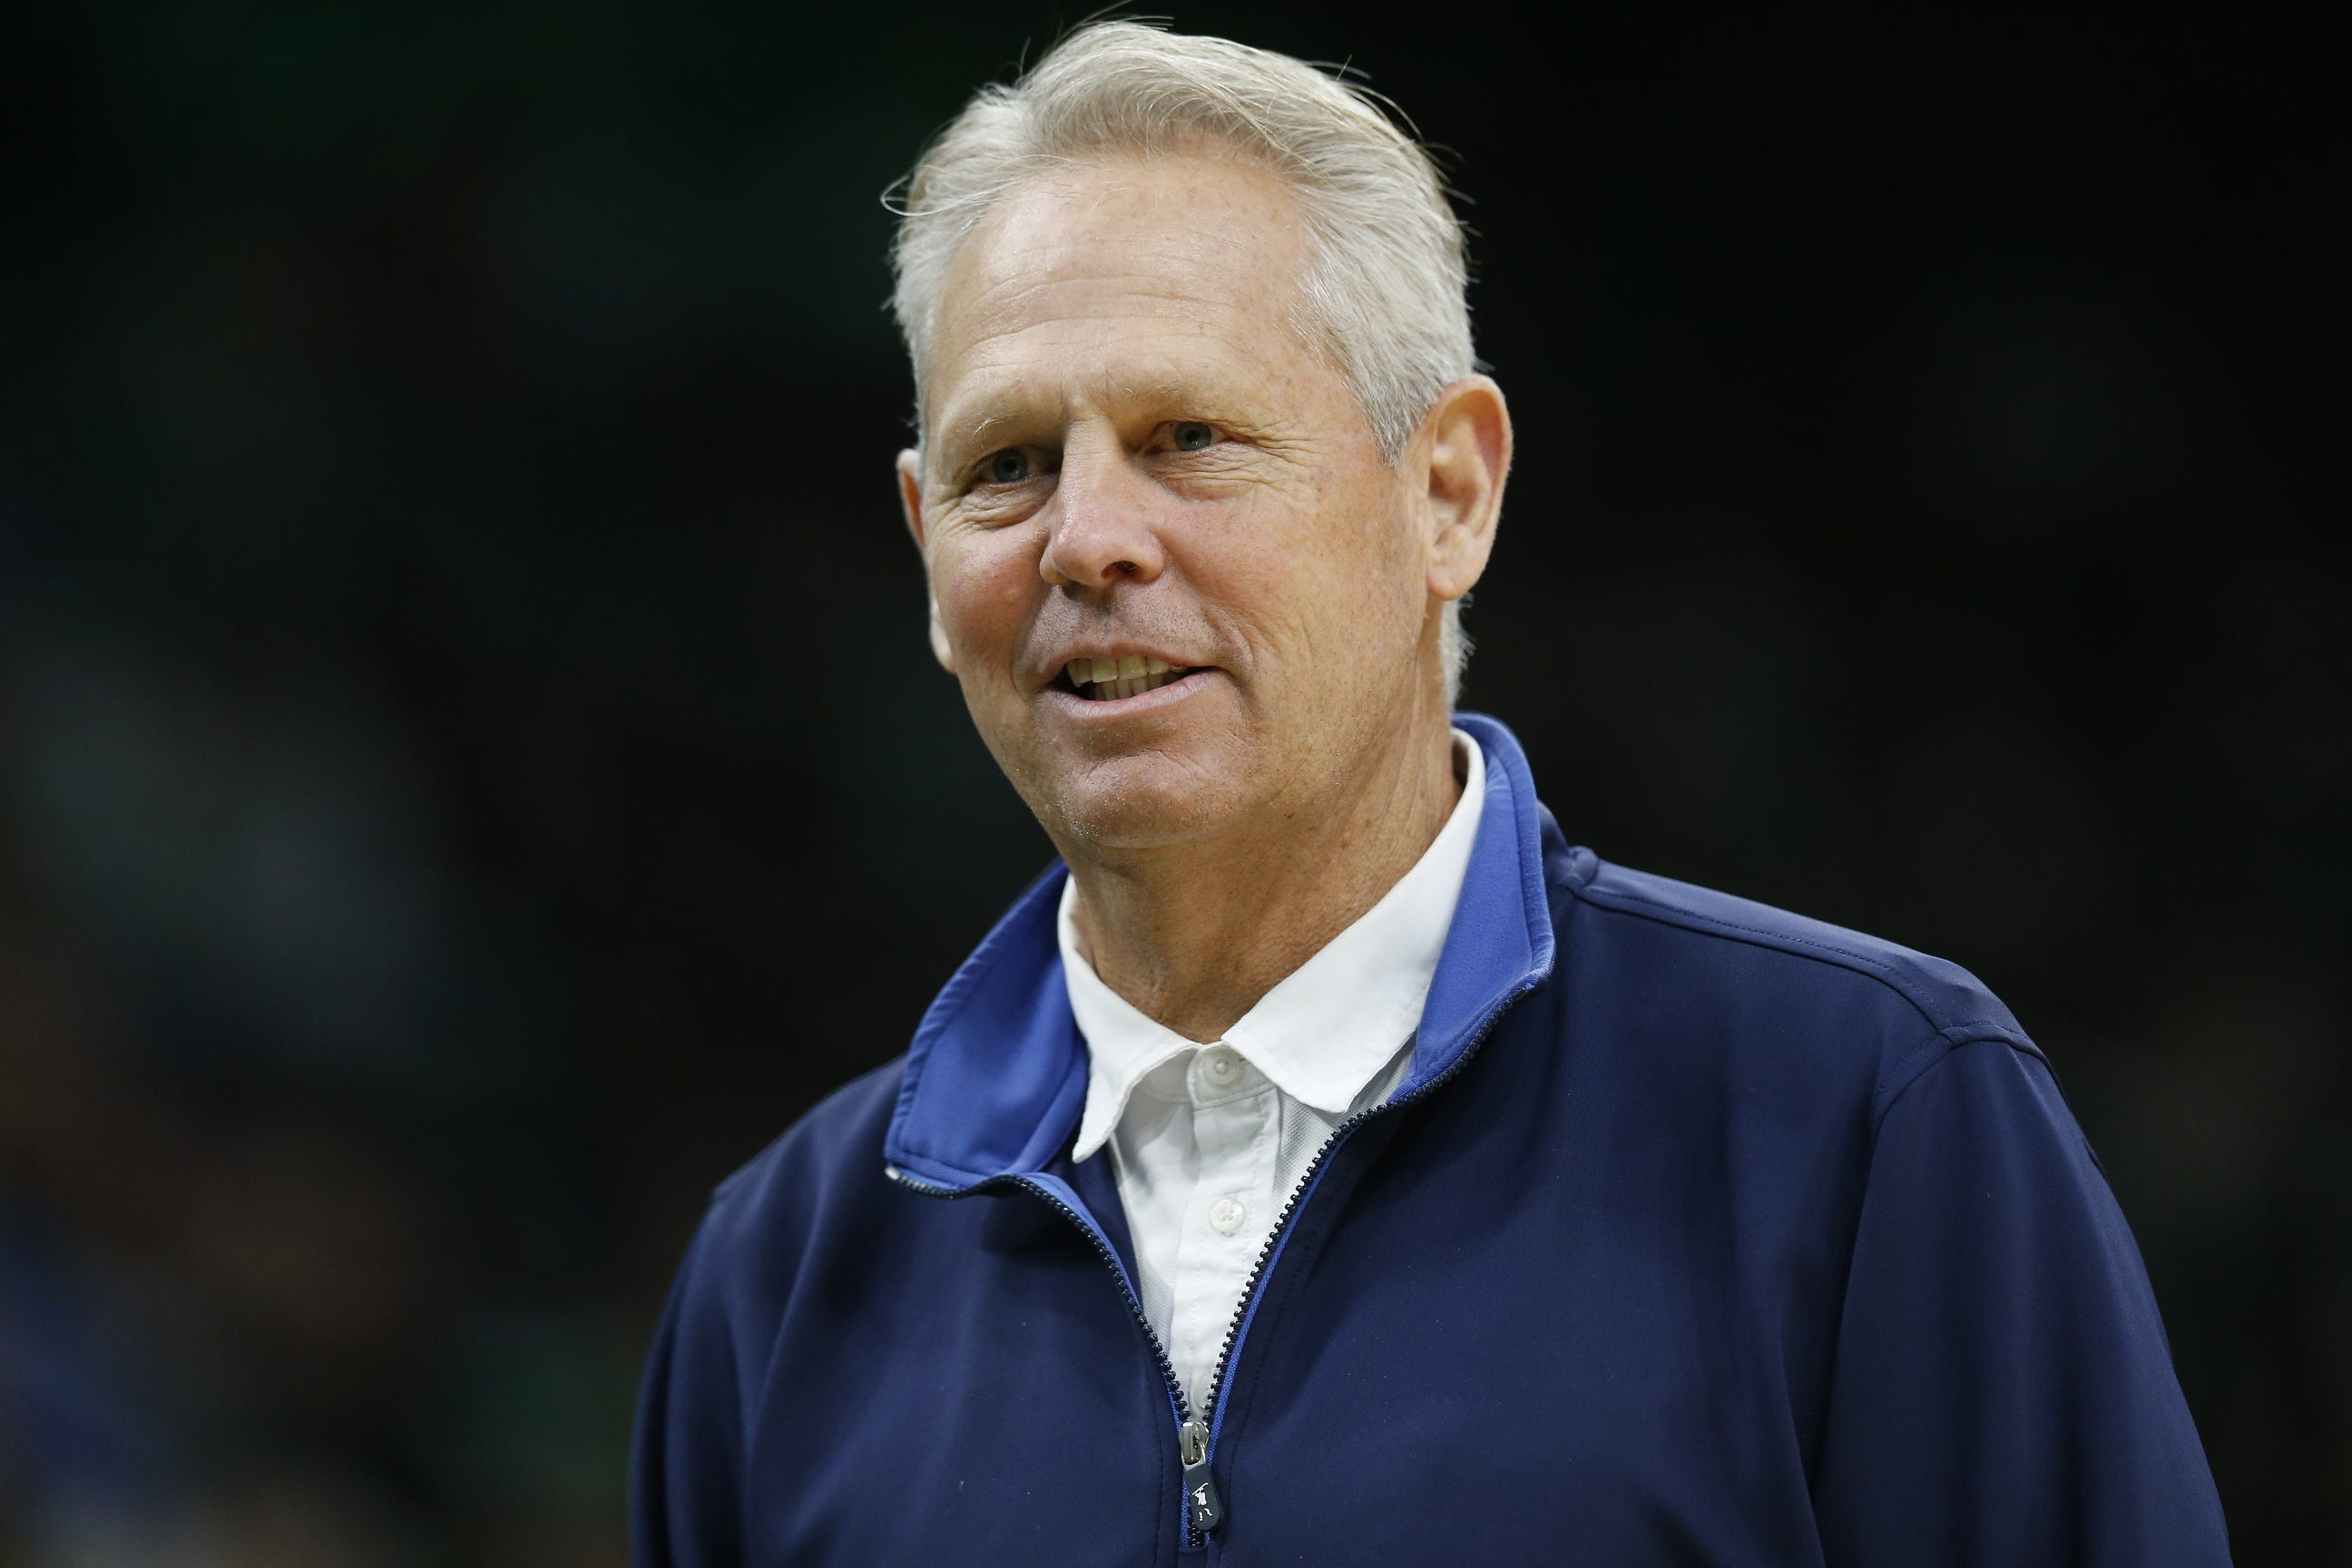 Boston Celtics general manager Danny Ainge reportedly has numerous NBA GMs upset because of his approach toward trading guard Kemba Walker despite a knee injury.